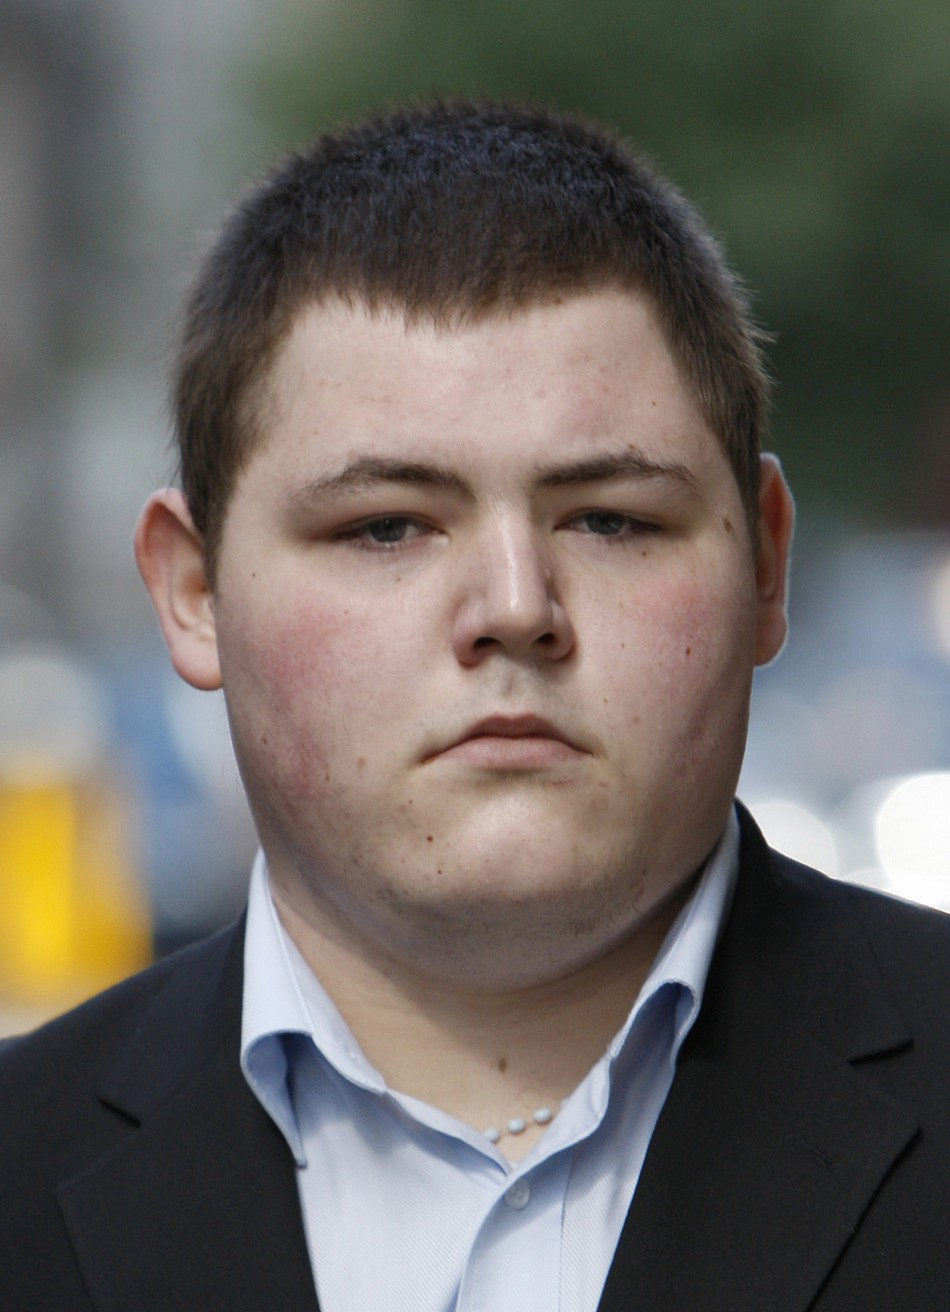 Jamie Waylett played Hogwarts bully Vincent Crabbe